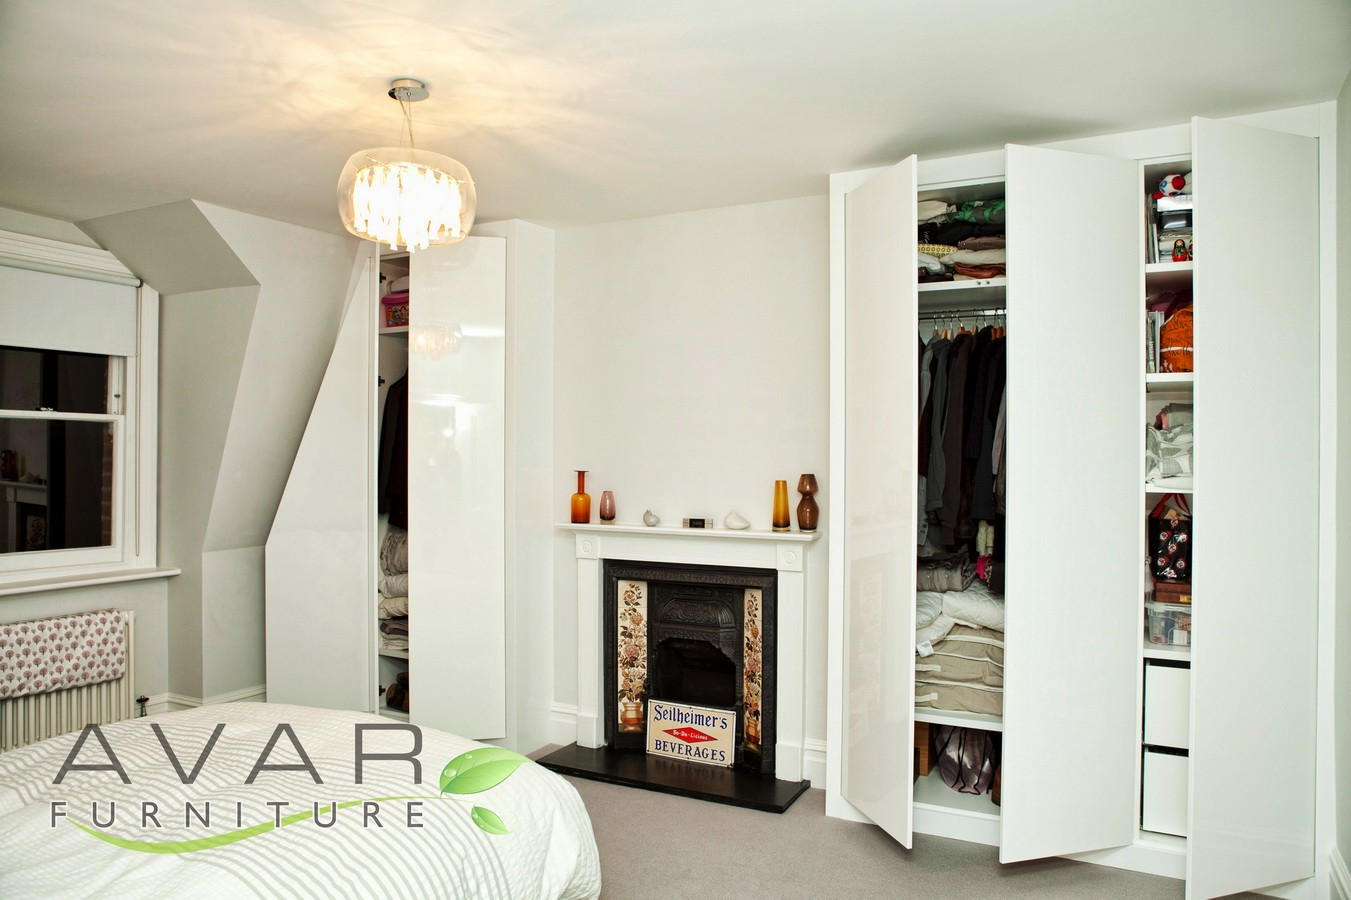 ƸӜƷ Fitted wardrobe ideas / Gallery 3 | North London, UK | Avar Furniture